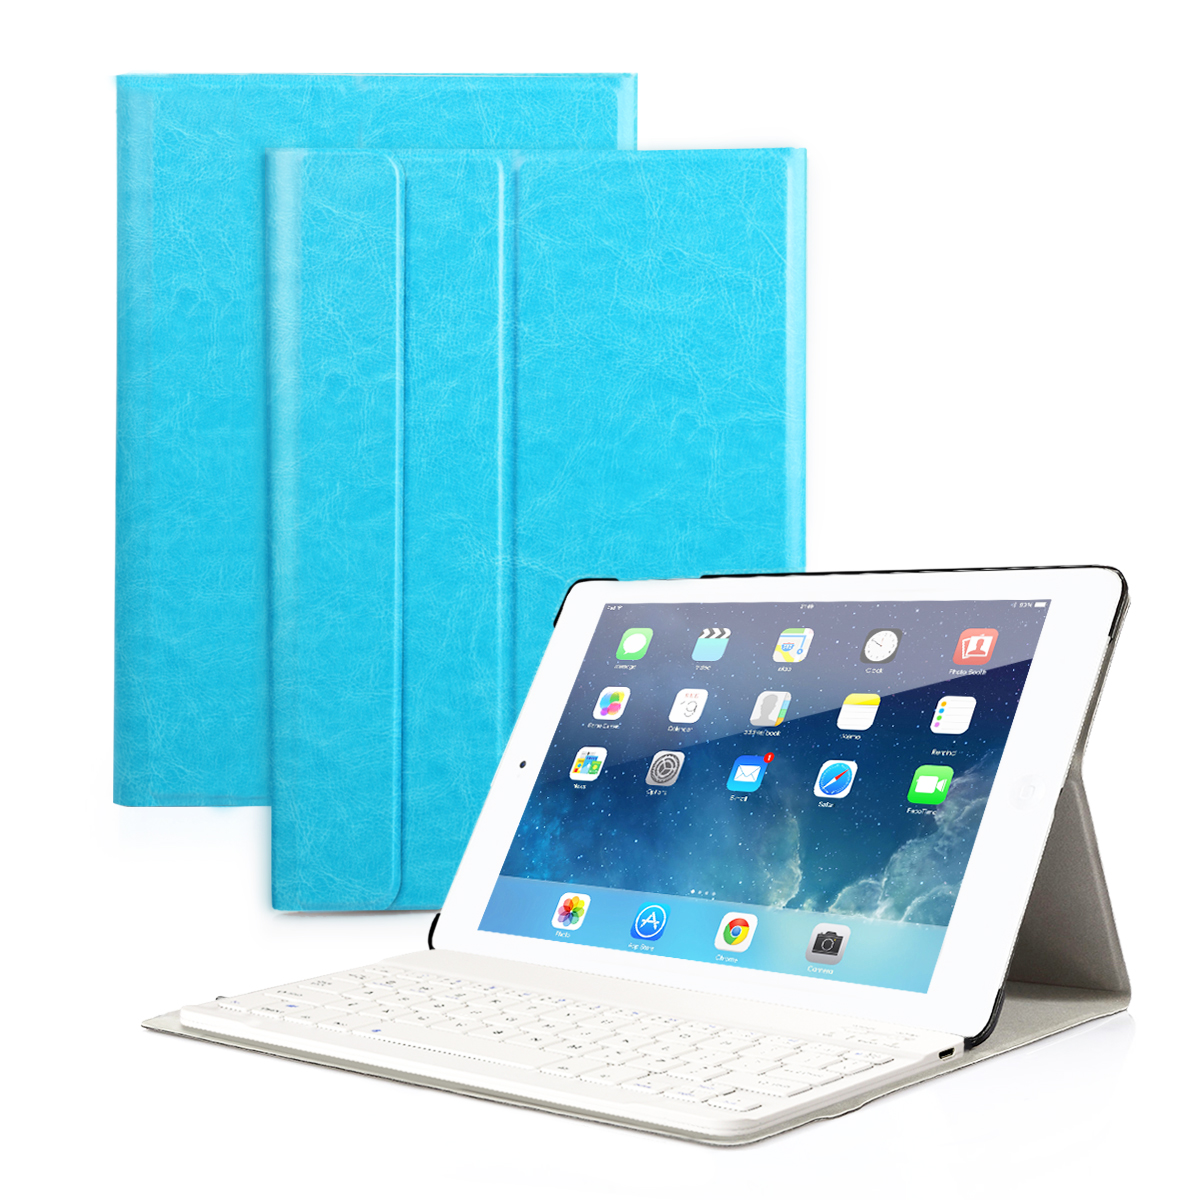 CoastaCloud Apple NEW iPad 2017 Wireless Bluetooth Keyboard 9.7 inch with Stand Folio Case Cover Rechargeable USB Cable Removeable Keyboard PU Leather